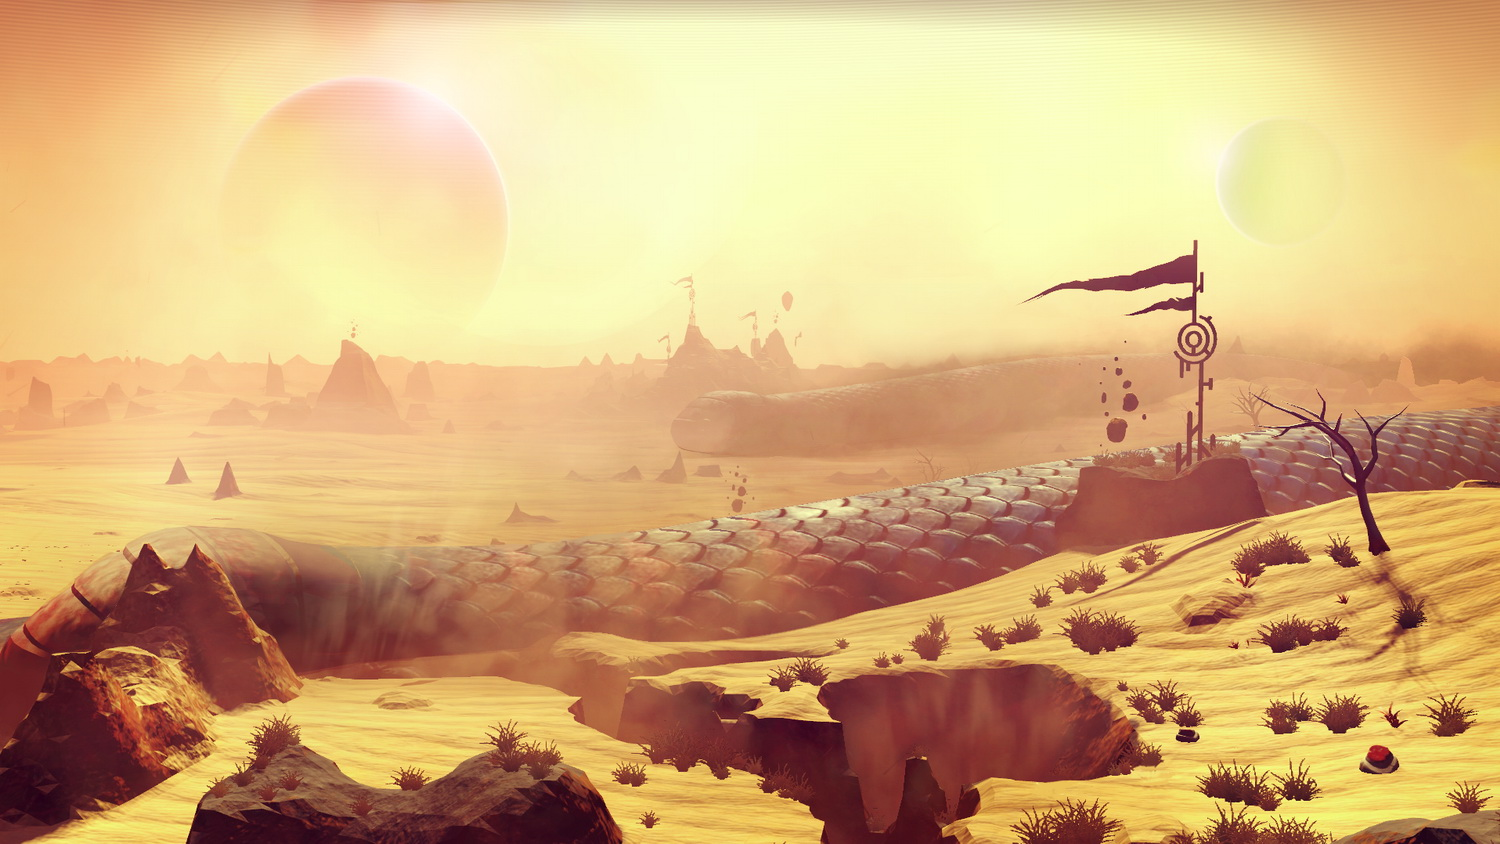 No Man's Sky set to release second major update, due this week